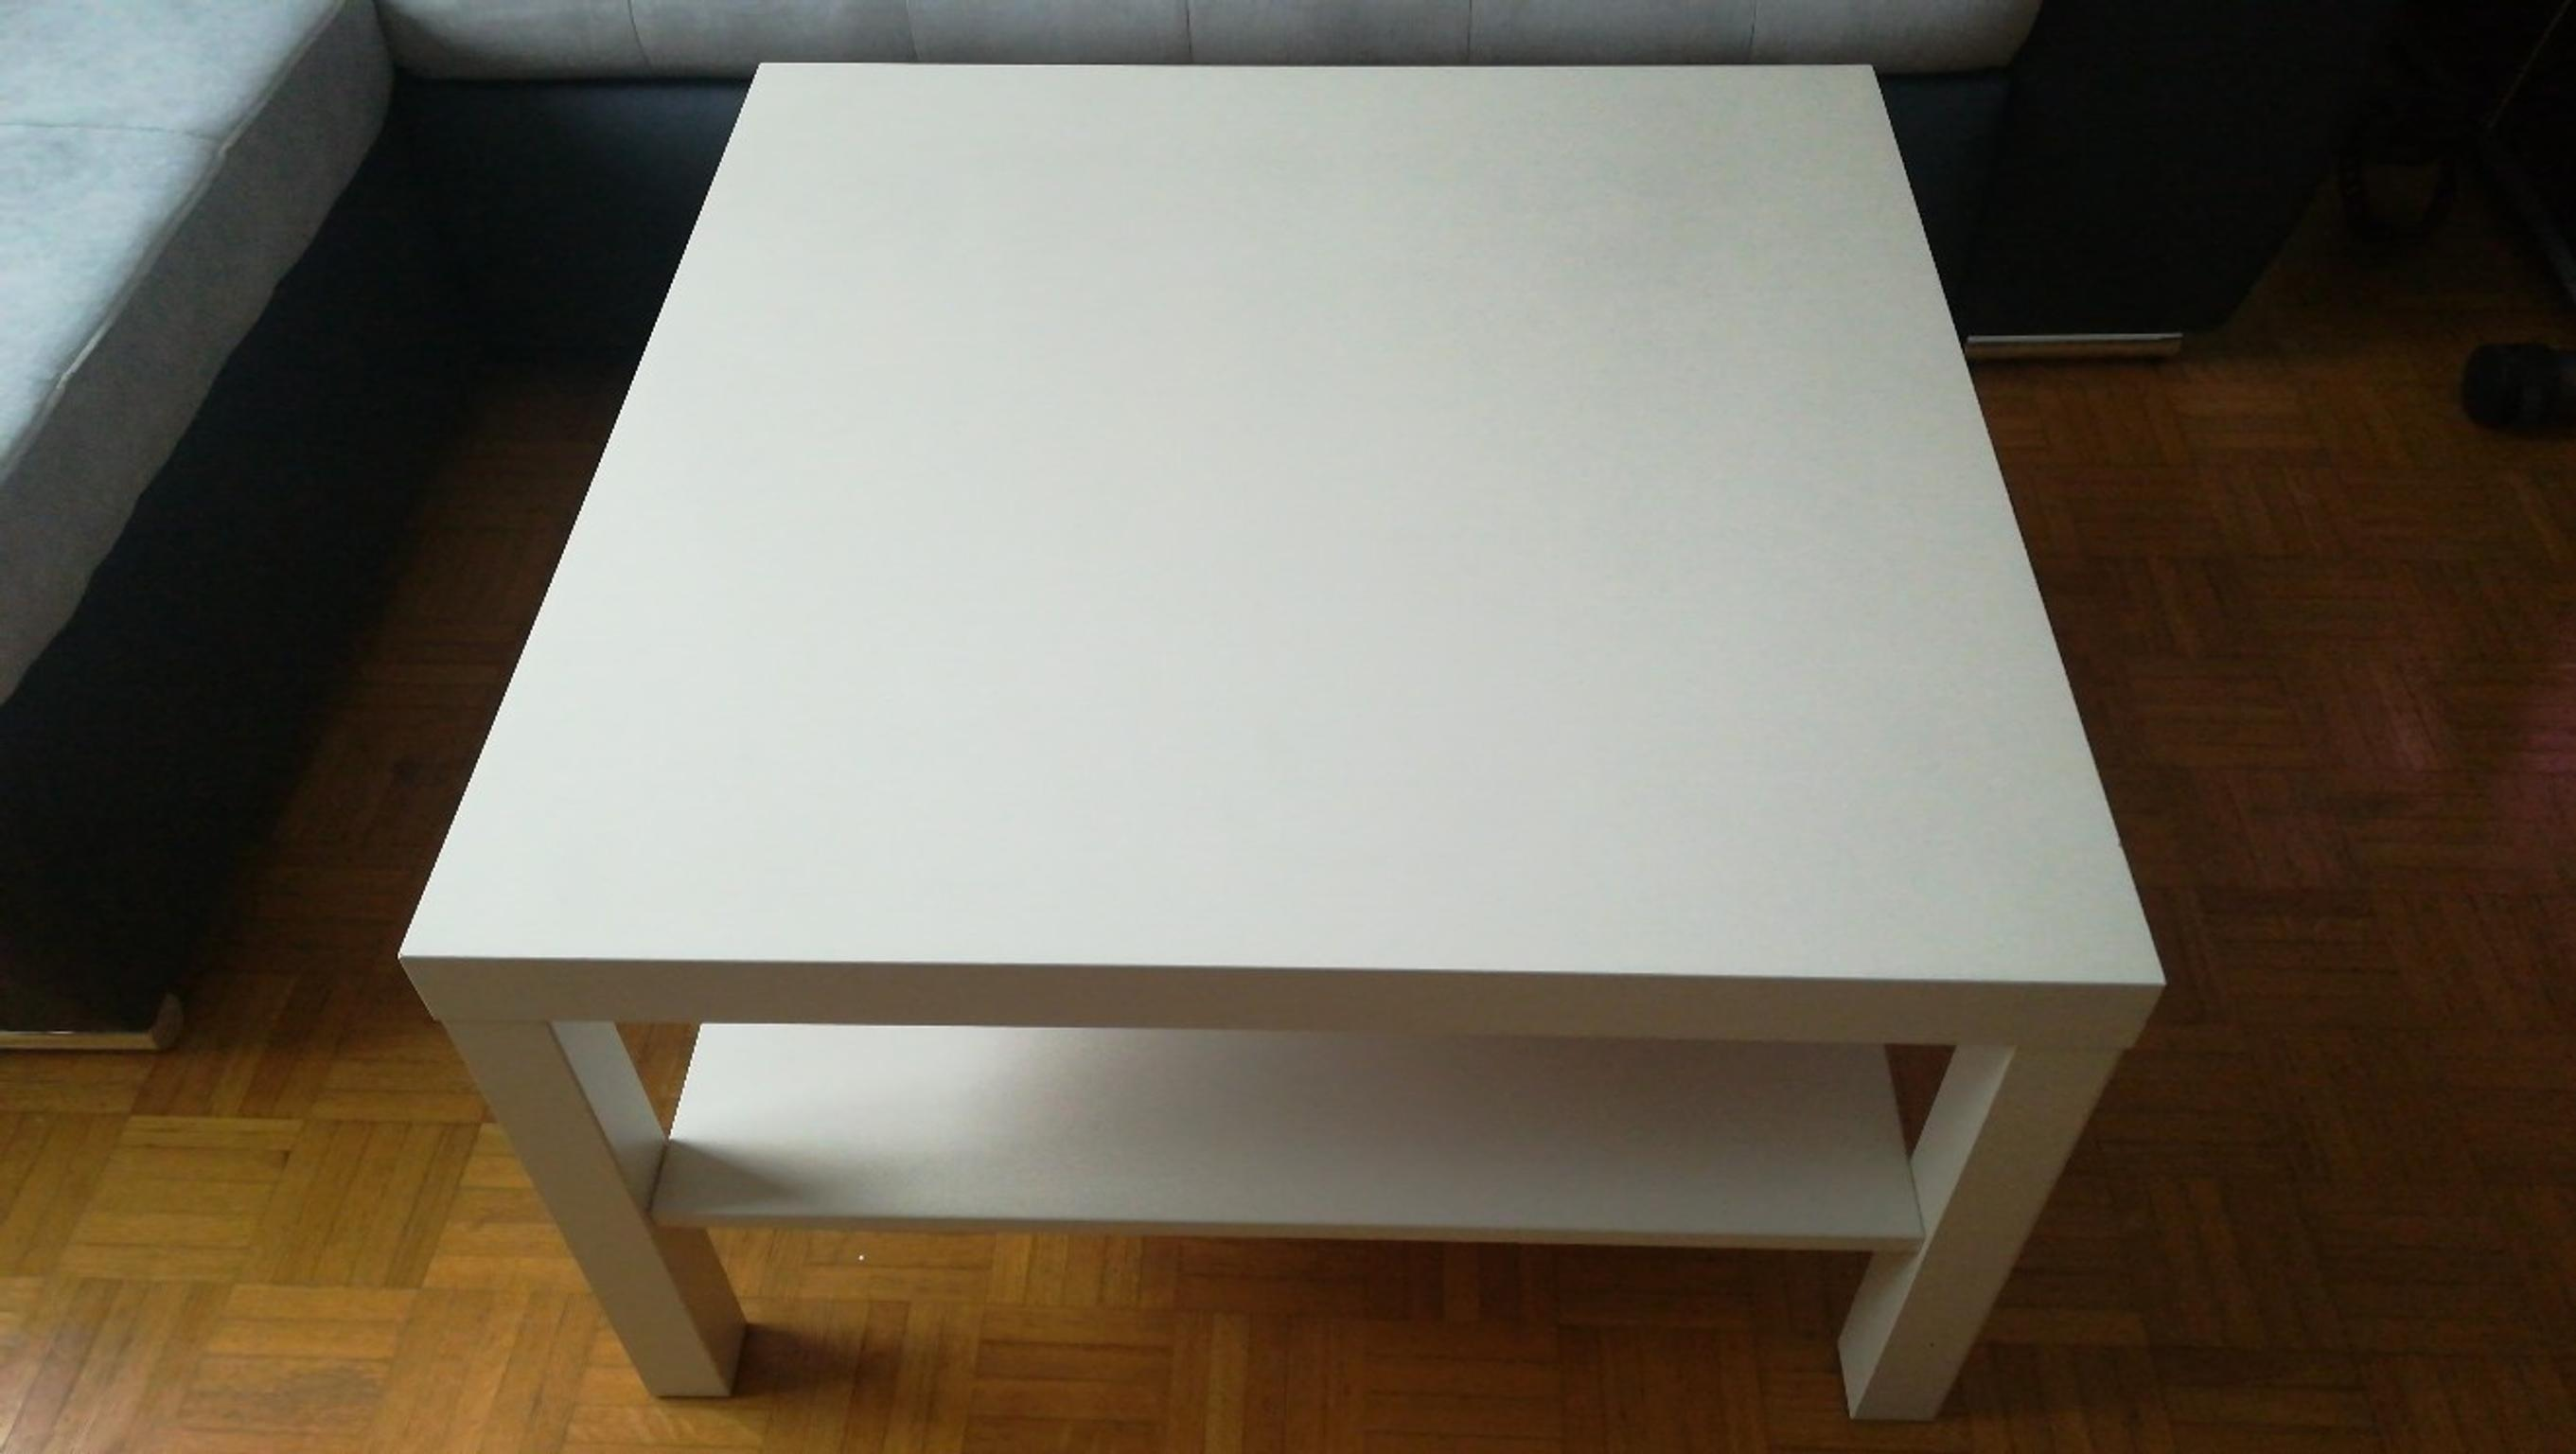 Ikea Couchtisch Lack 78x78 In 1170 Kg Hernals For 10 00 For Sale Shpock